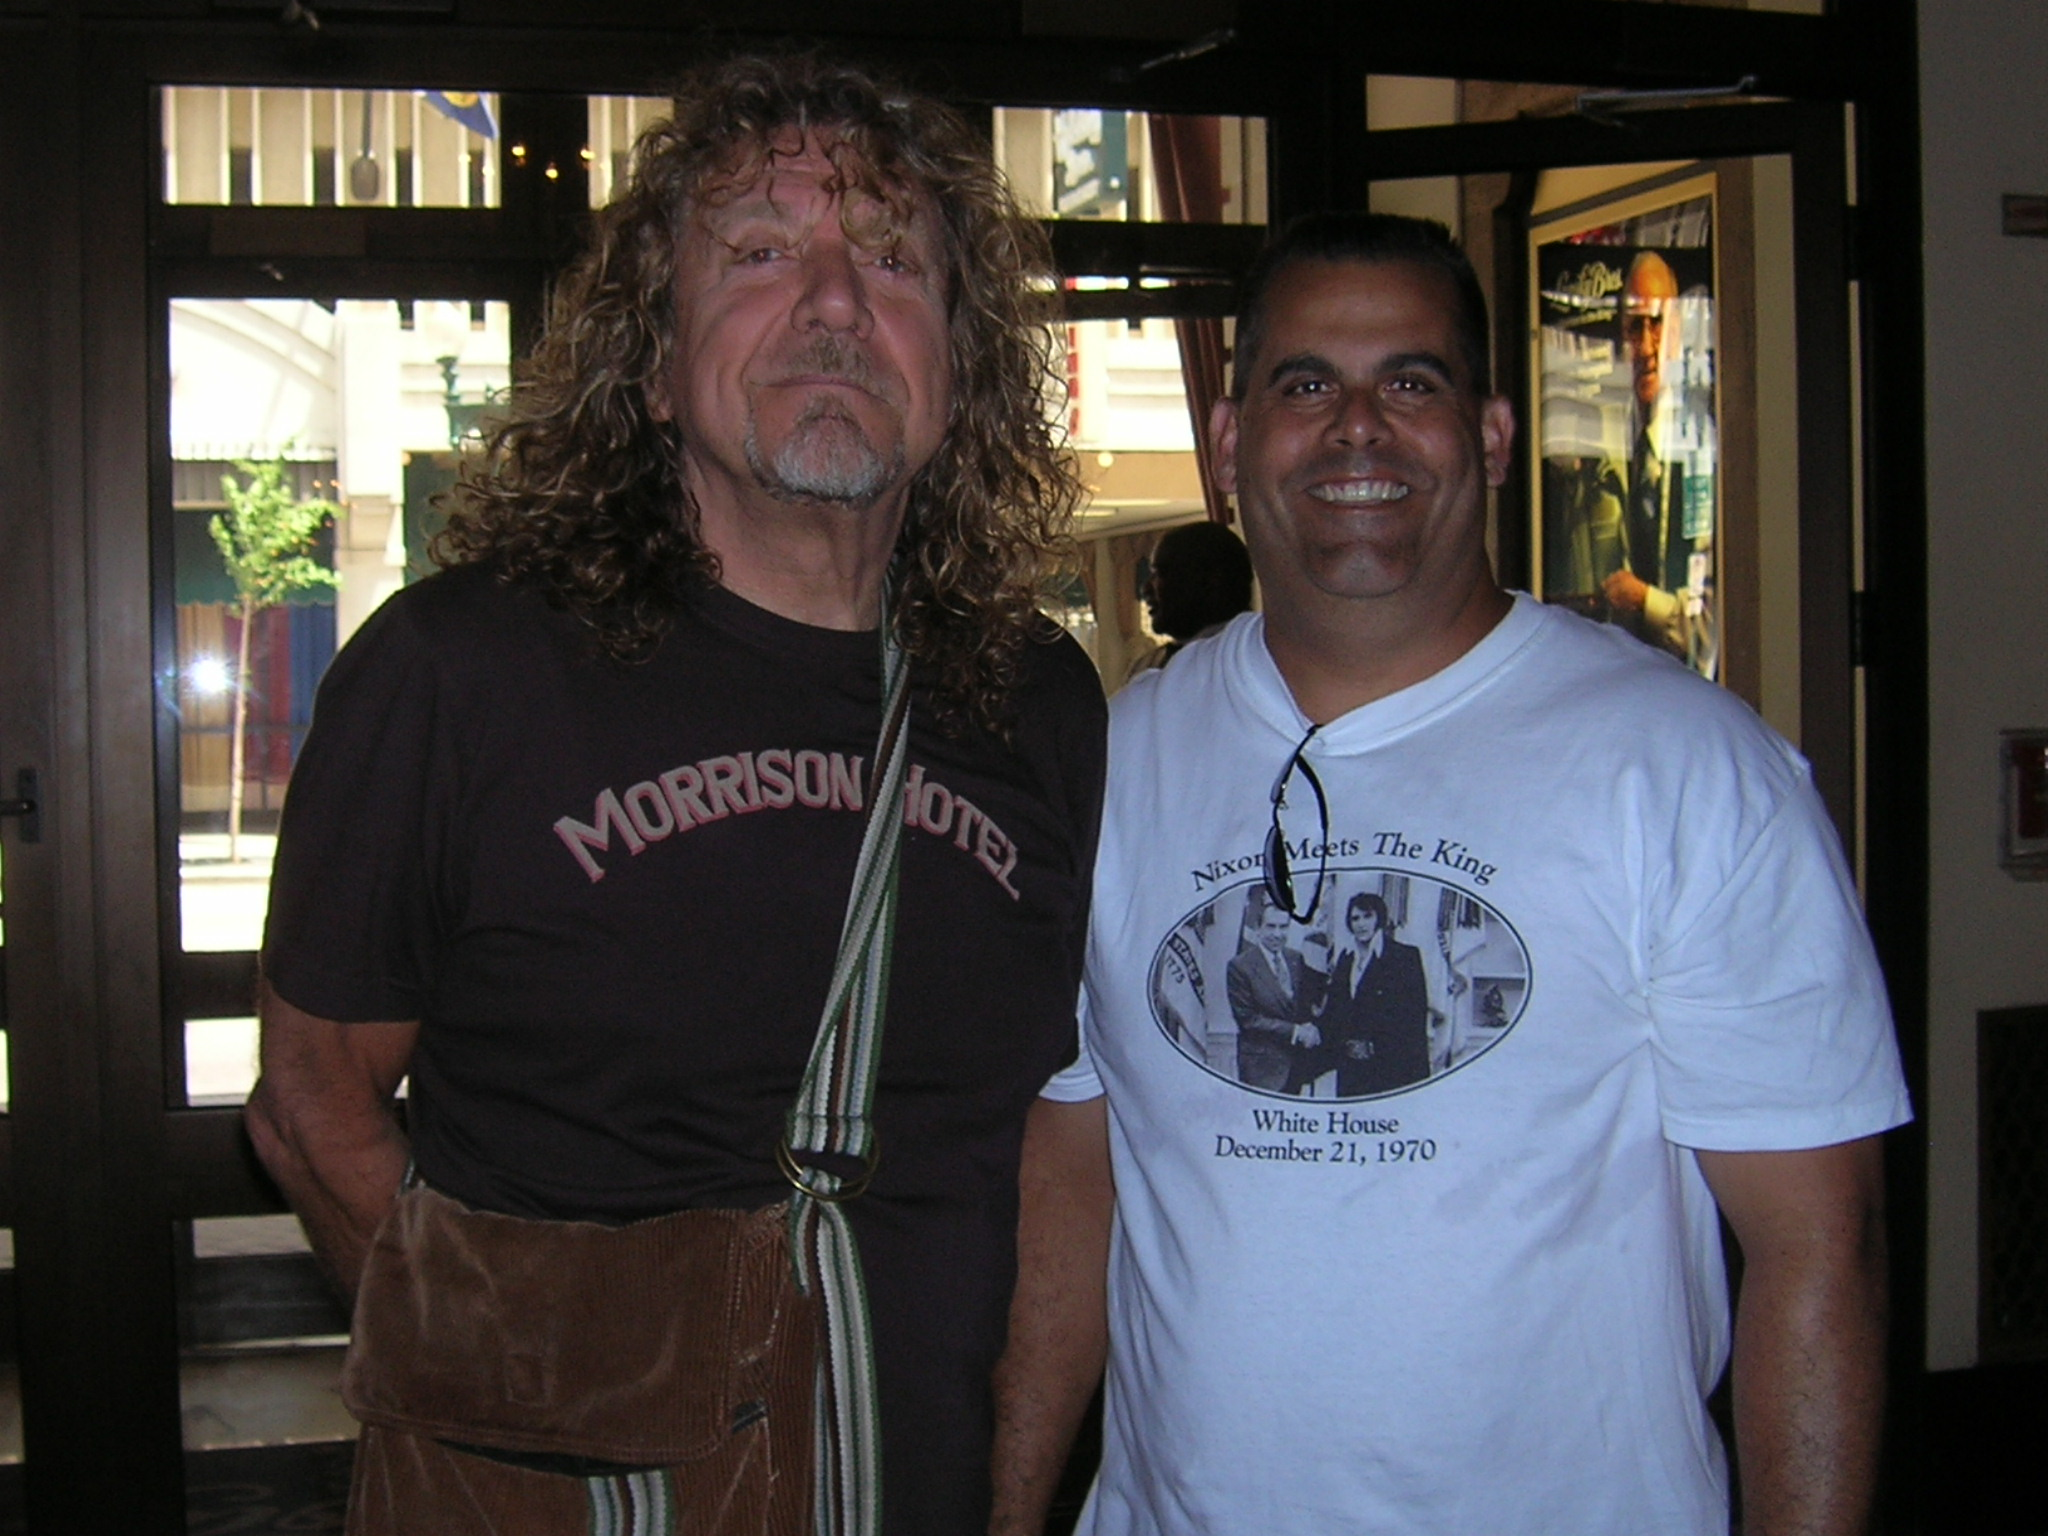 At least a fan of Morrison Hotel. Here he is with some dude.  sc 1 st  Musical Stew Daily - WordPress.com & Robert Plant \u2014 A Doors Fan? | Musical Stew Daily